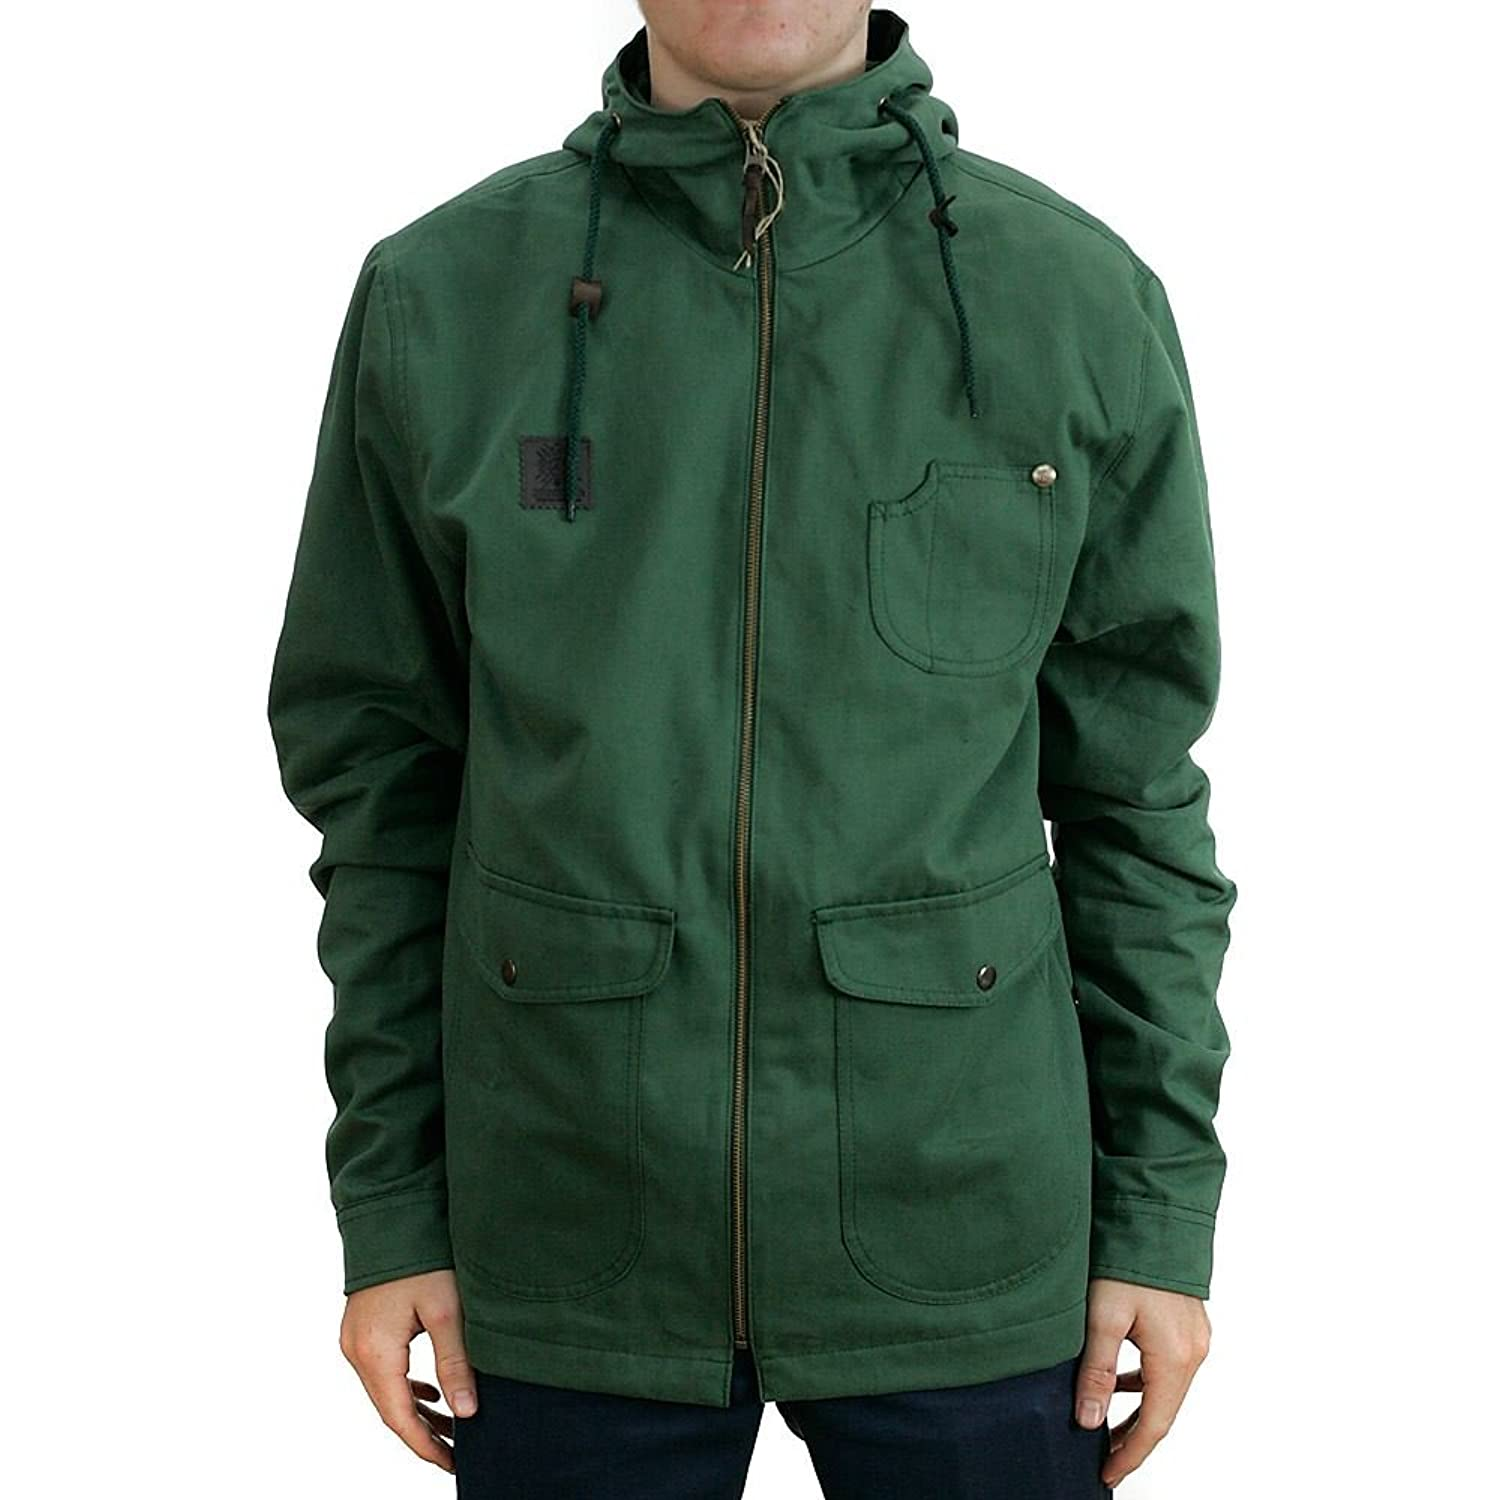 Turbo Kolor Sherman Jacket Olive Coat Fall 2015 Range